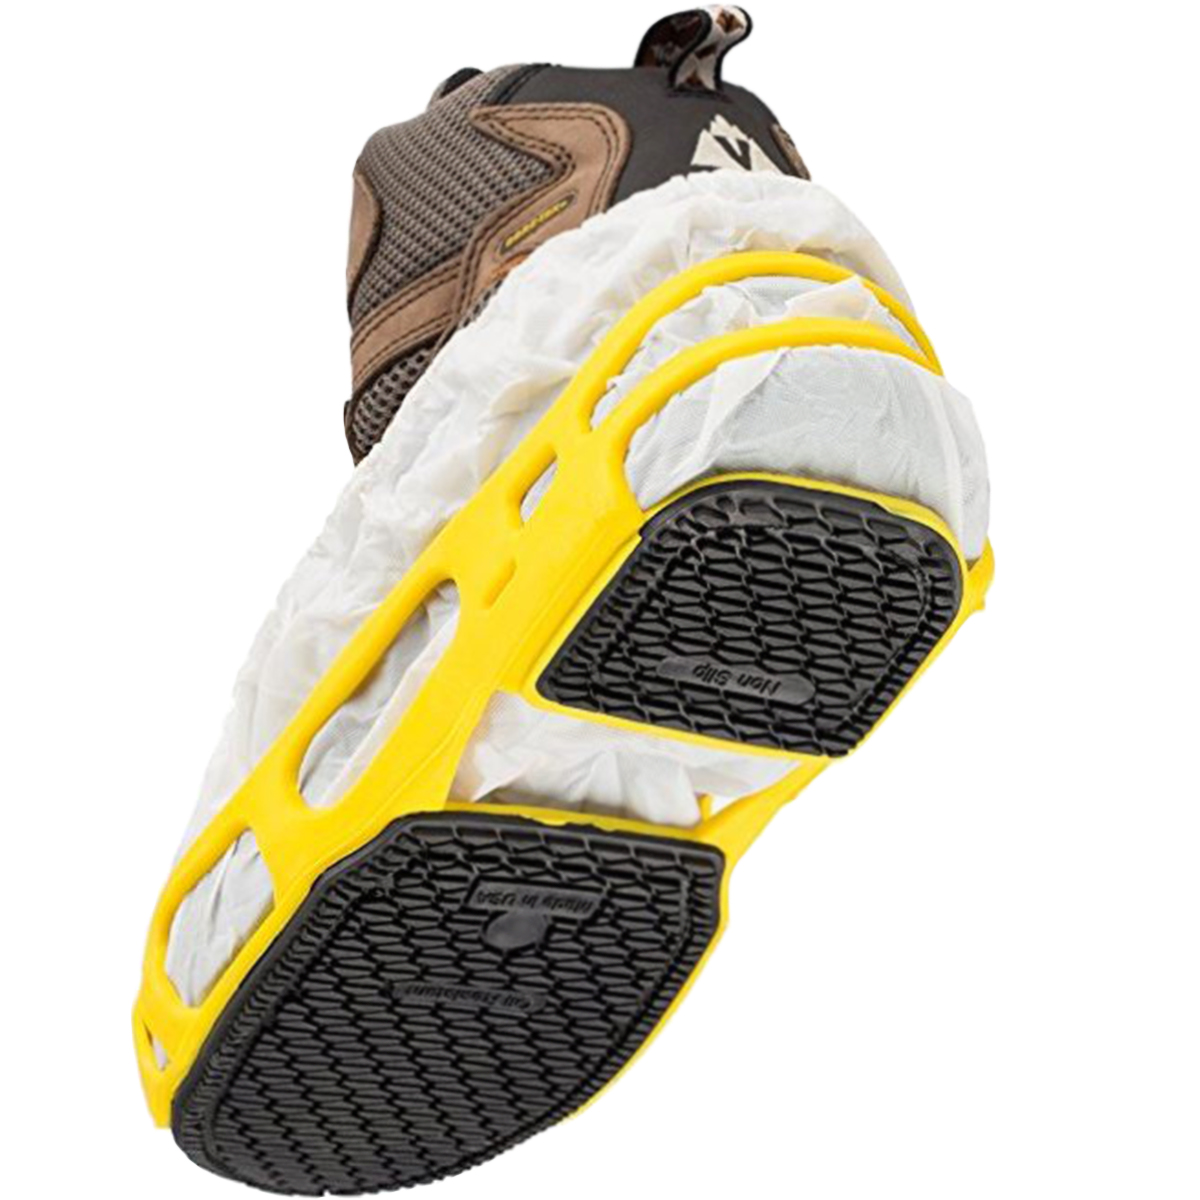 Comfortable Shoes For Walking On Concrete Floors Most